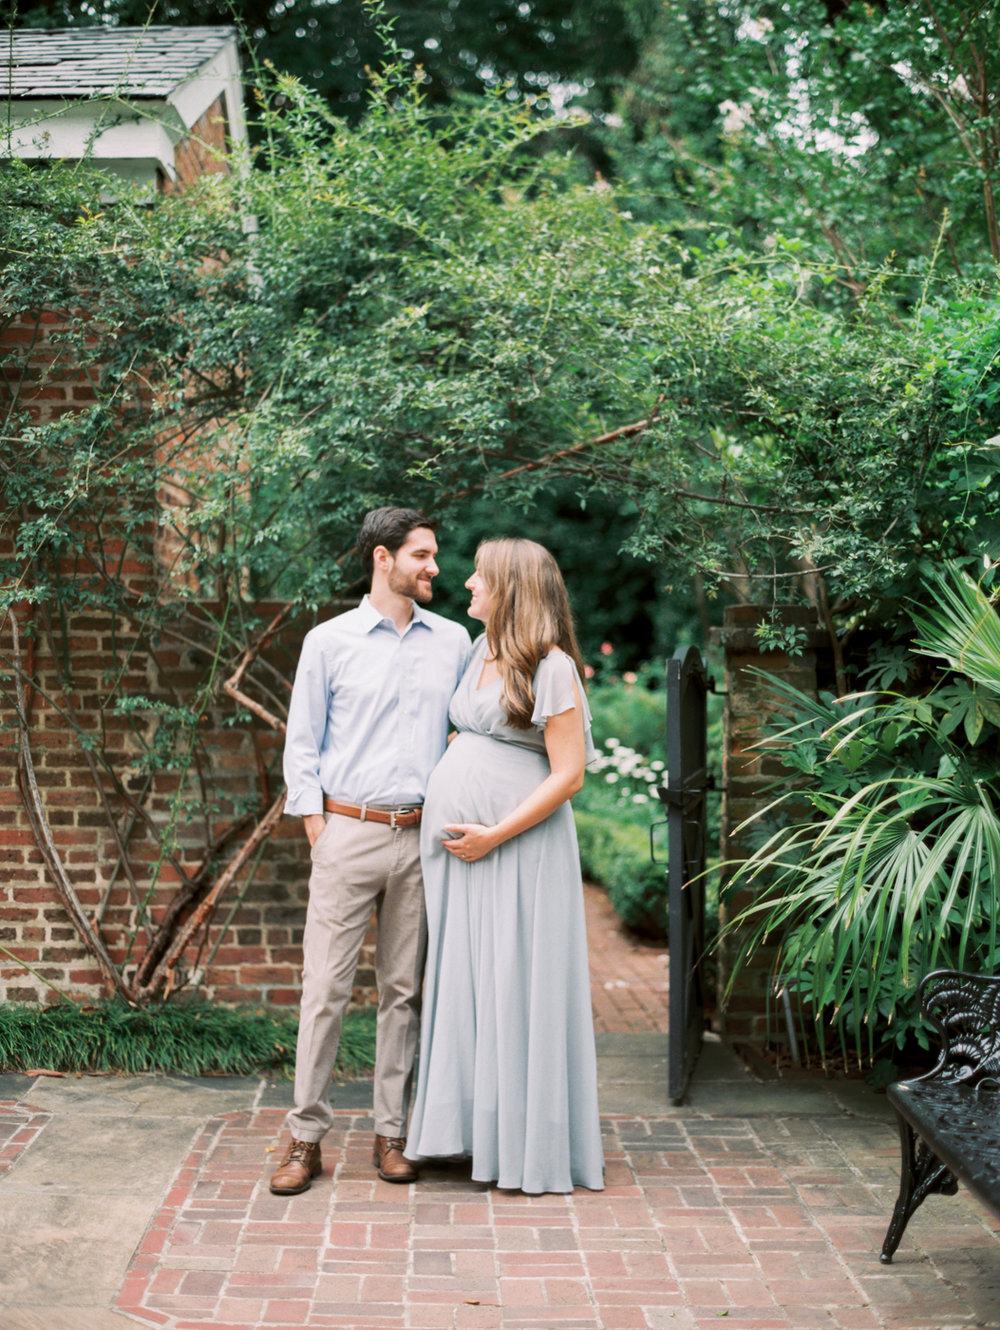 shackleford maternity four corners photography athens maternity photographer anna shackleford photography atlanta film photographer maternity photography-21.jpg